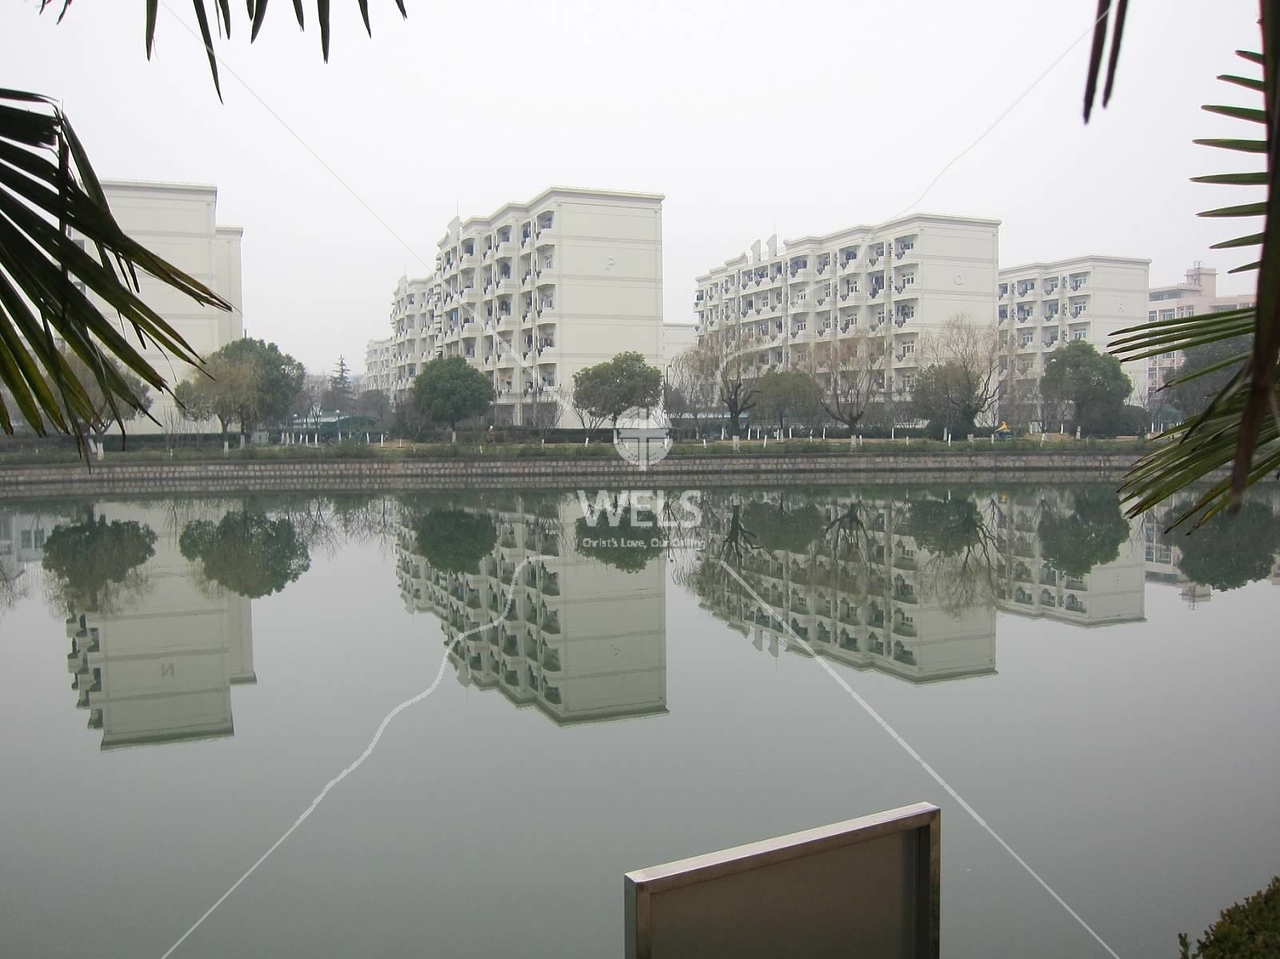 Shanghai University Campus Dormitory pond reflections, Shanghai, China by kstellick